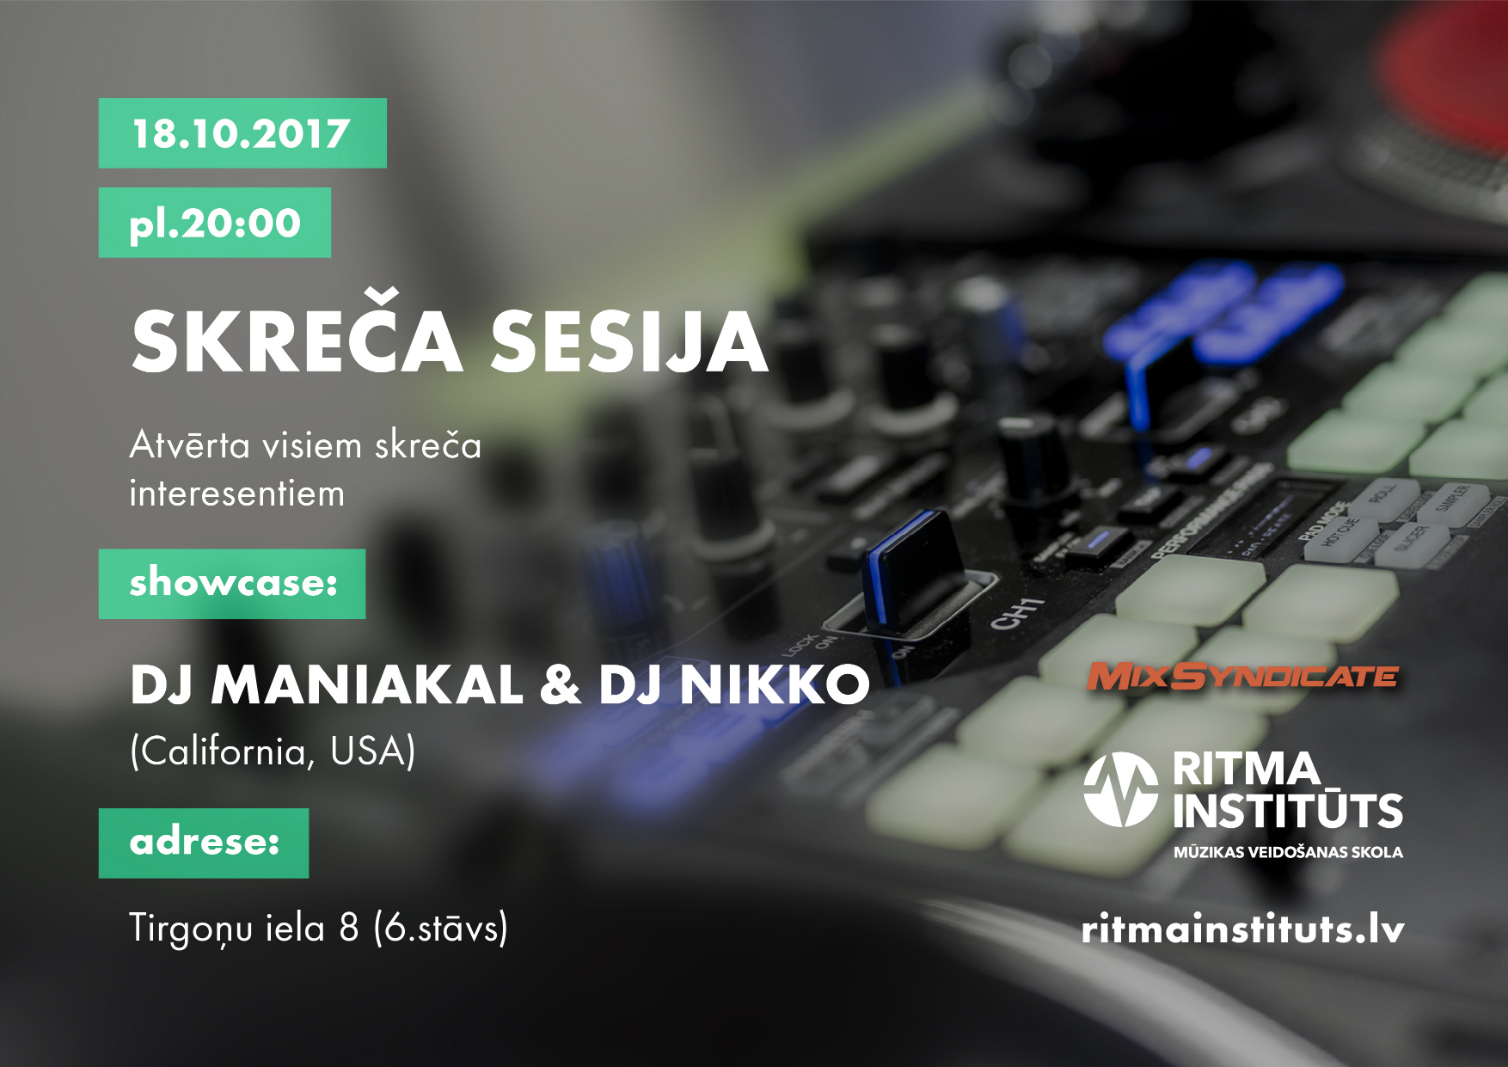 scratch_session_ritma_instituts_dj_maniakal_nikko_usa.jpg